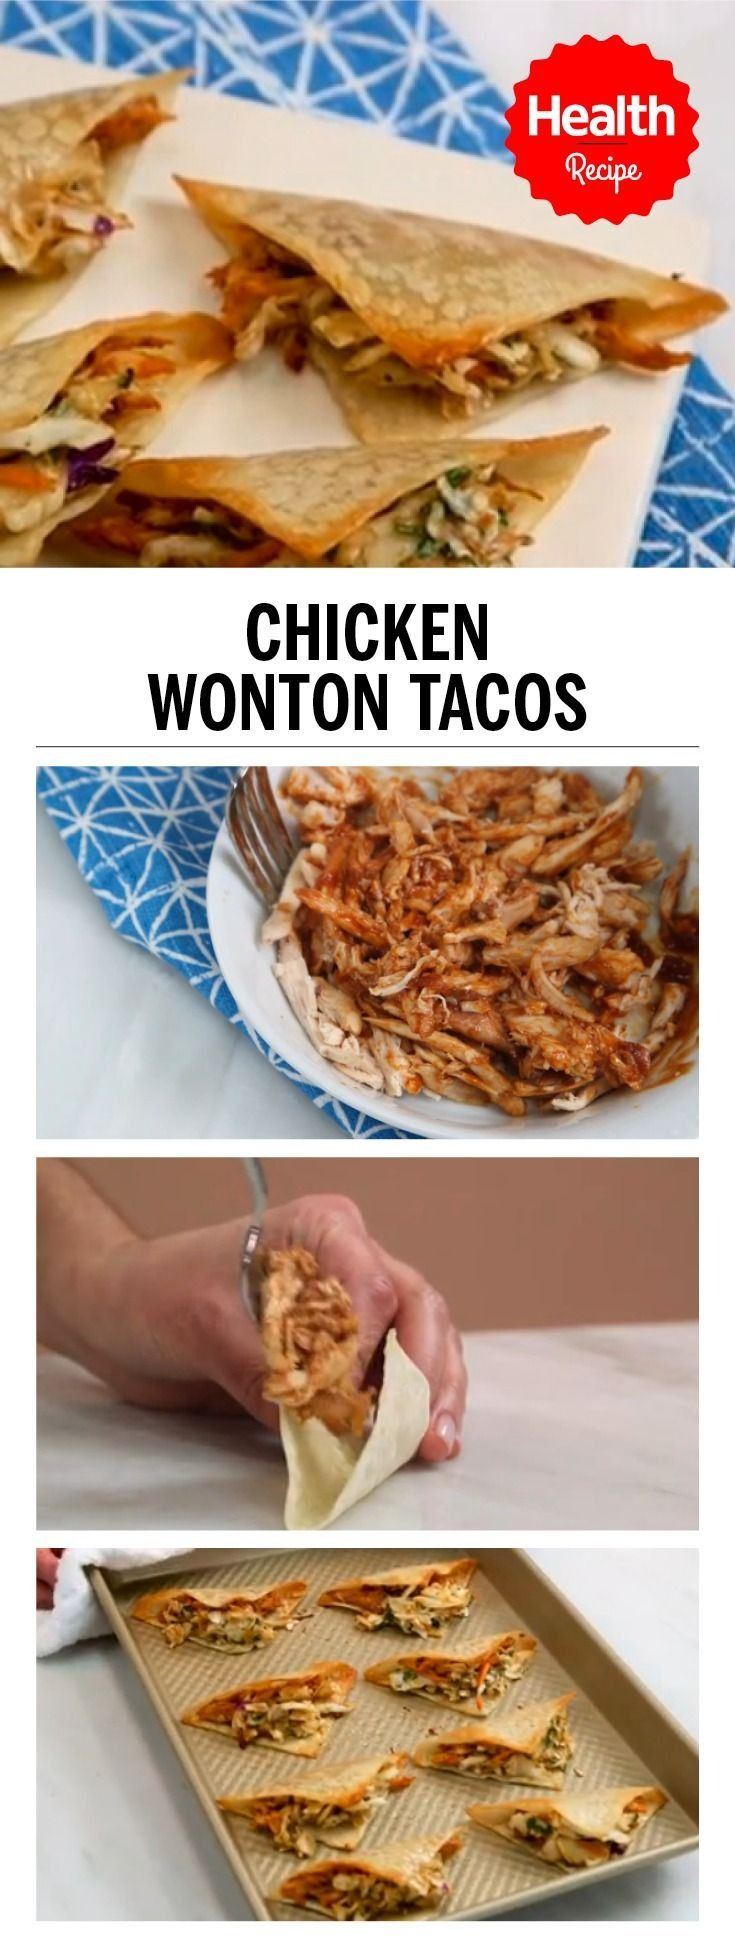 These chicken wonton tacos are a great option for entertaining. Watch this video to learn how to make delicious chicken wonton tacos | Health.com